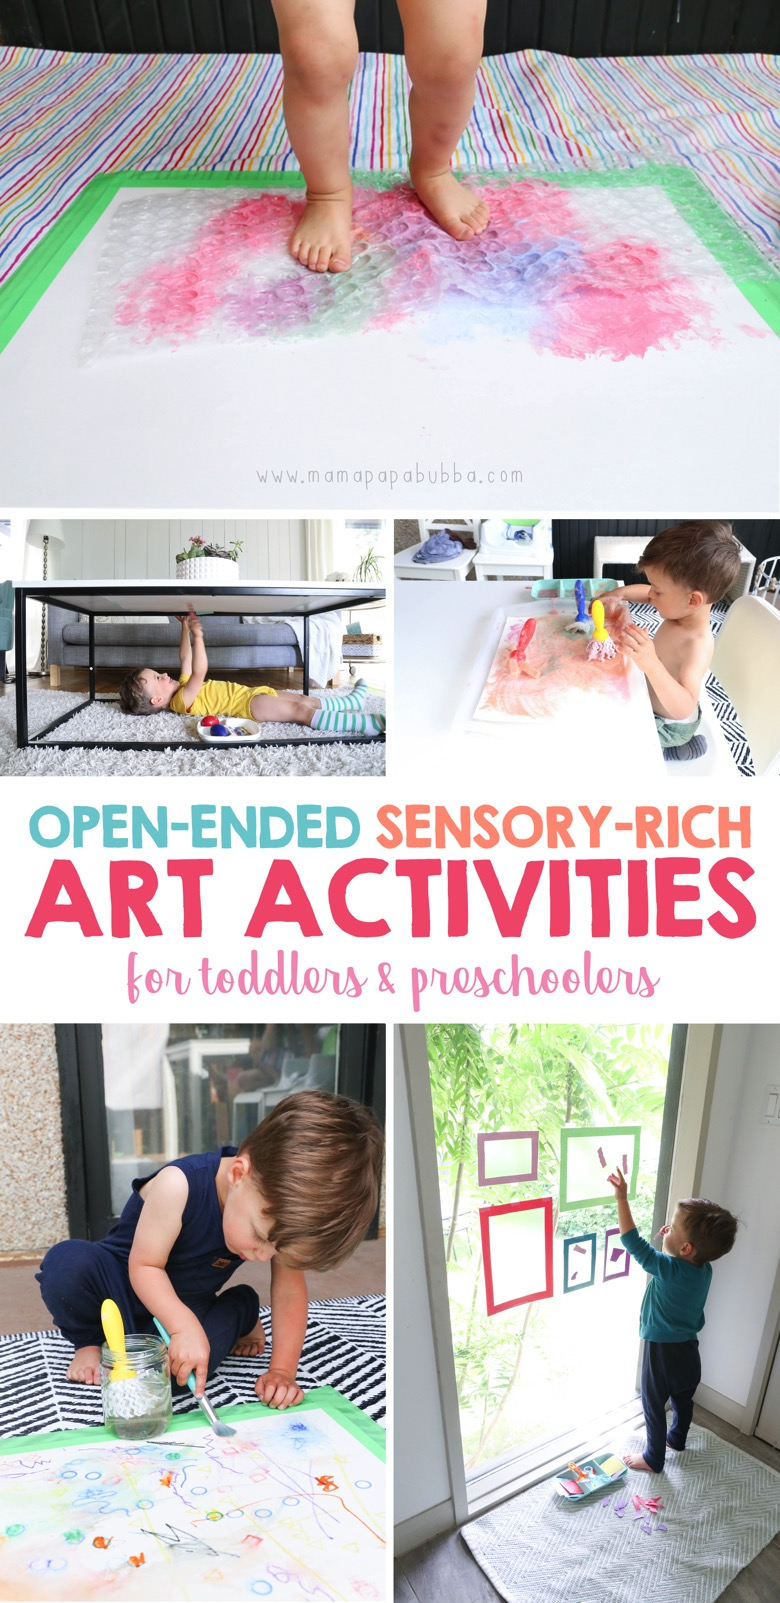 Open Ended Sensory Rich Art Activities for Toddlers and Preschoolers | Mama Papa Bubba